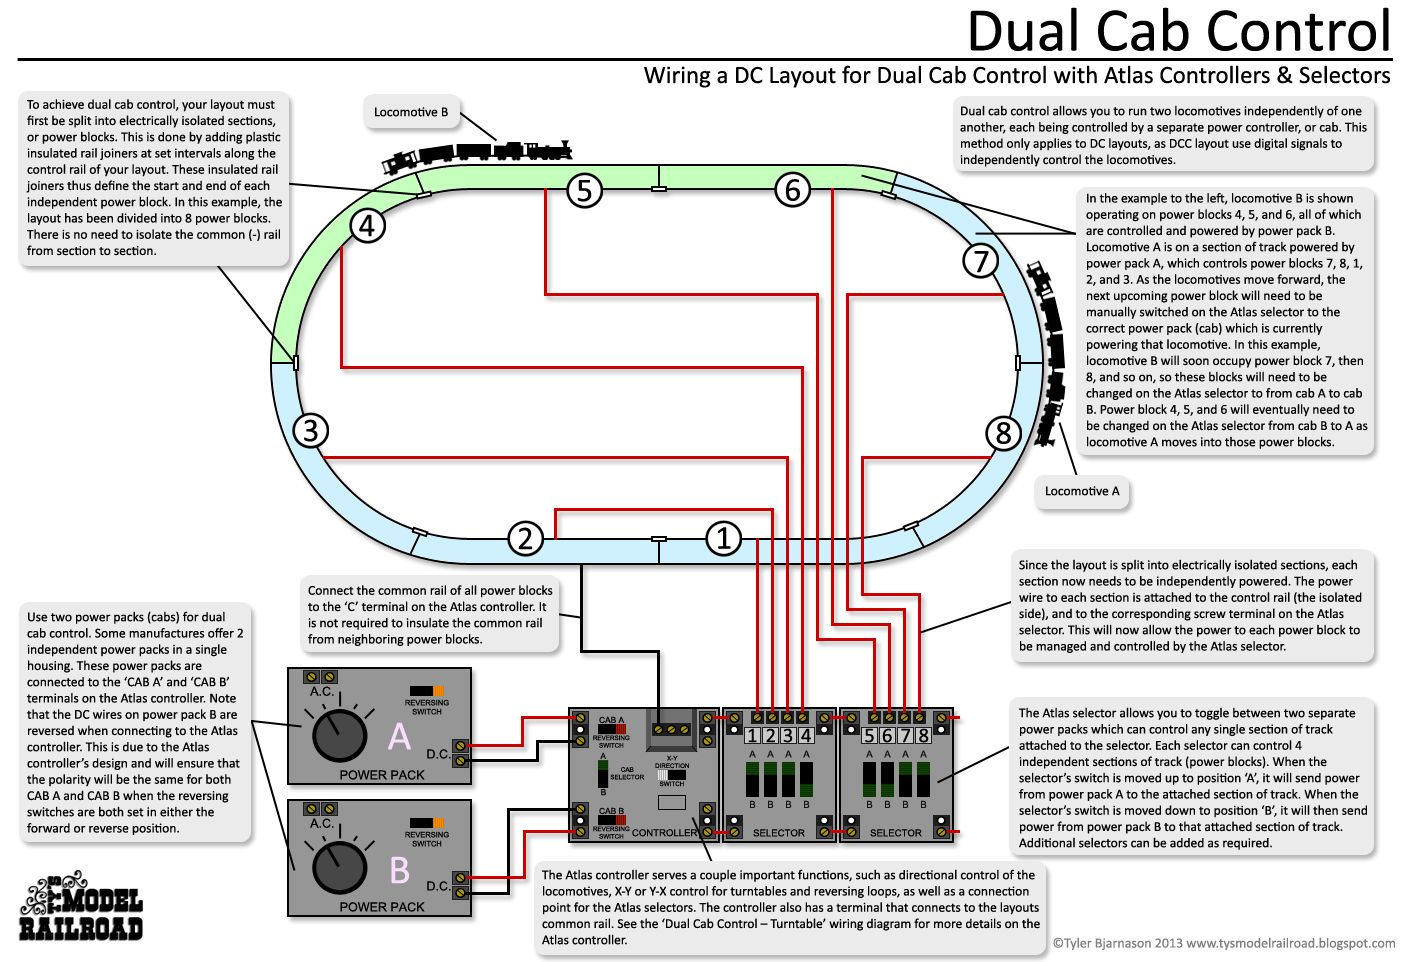 TY'S MODEL RAILROAD: Wiring Diagrams | Ho model trains, Model railroad, Ho  scale train layout | Ho Railroad Wiring Diagrams |  | Pinterest